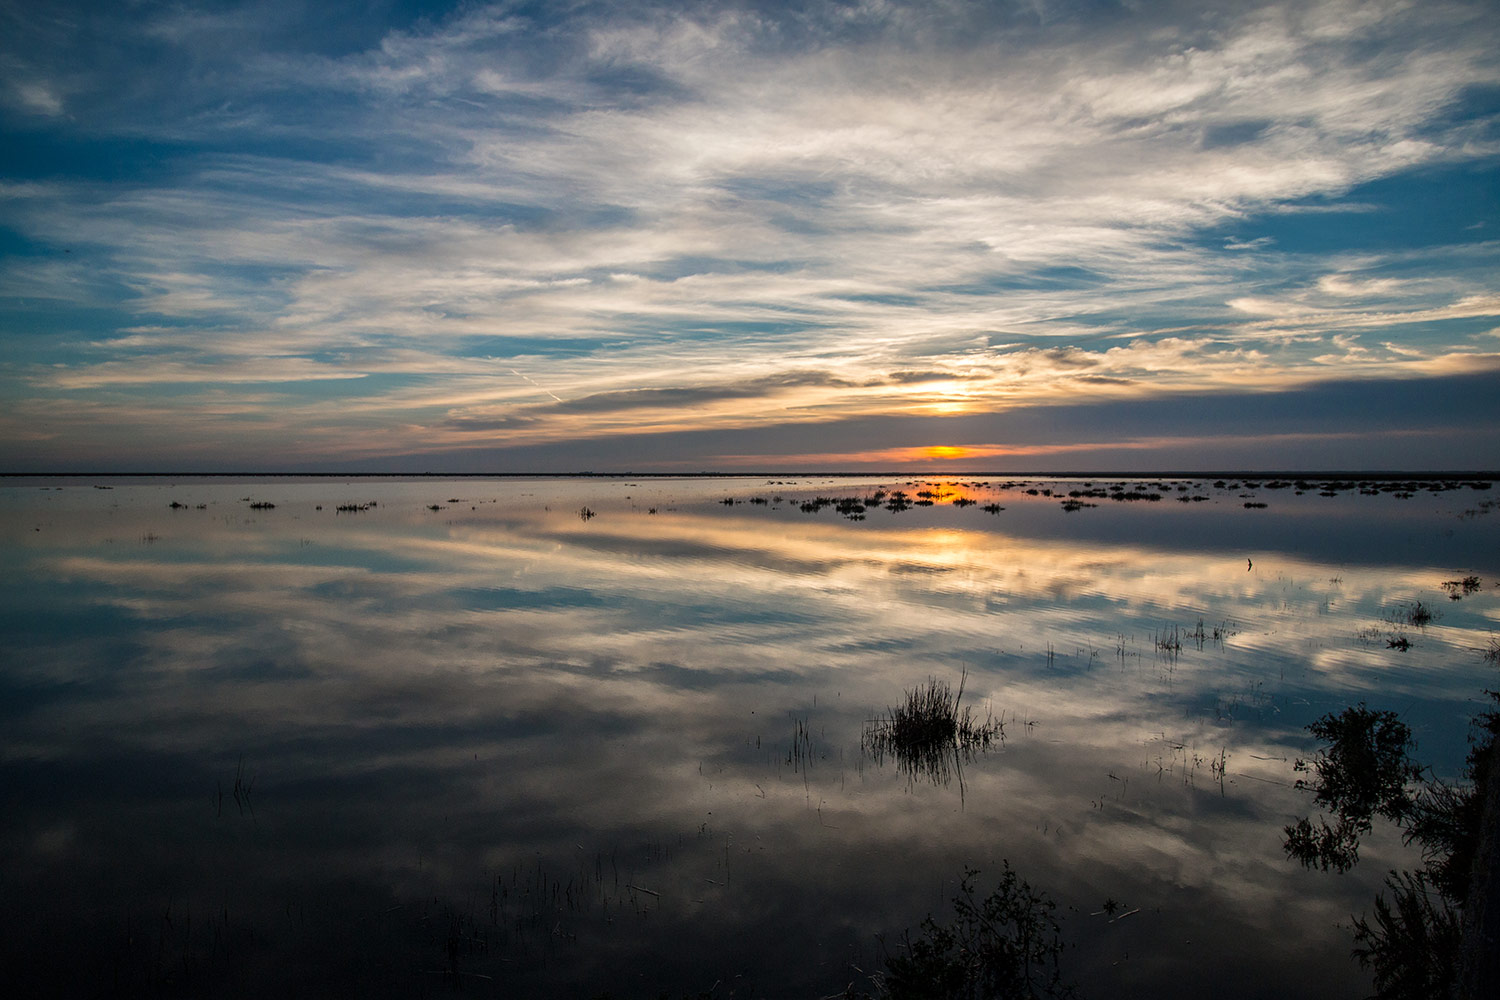 Sunset in the flooded marshes